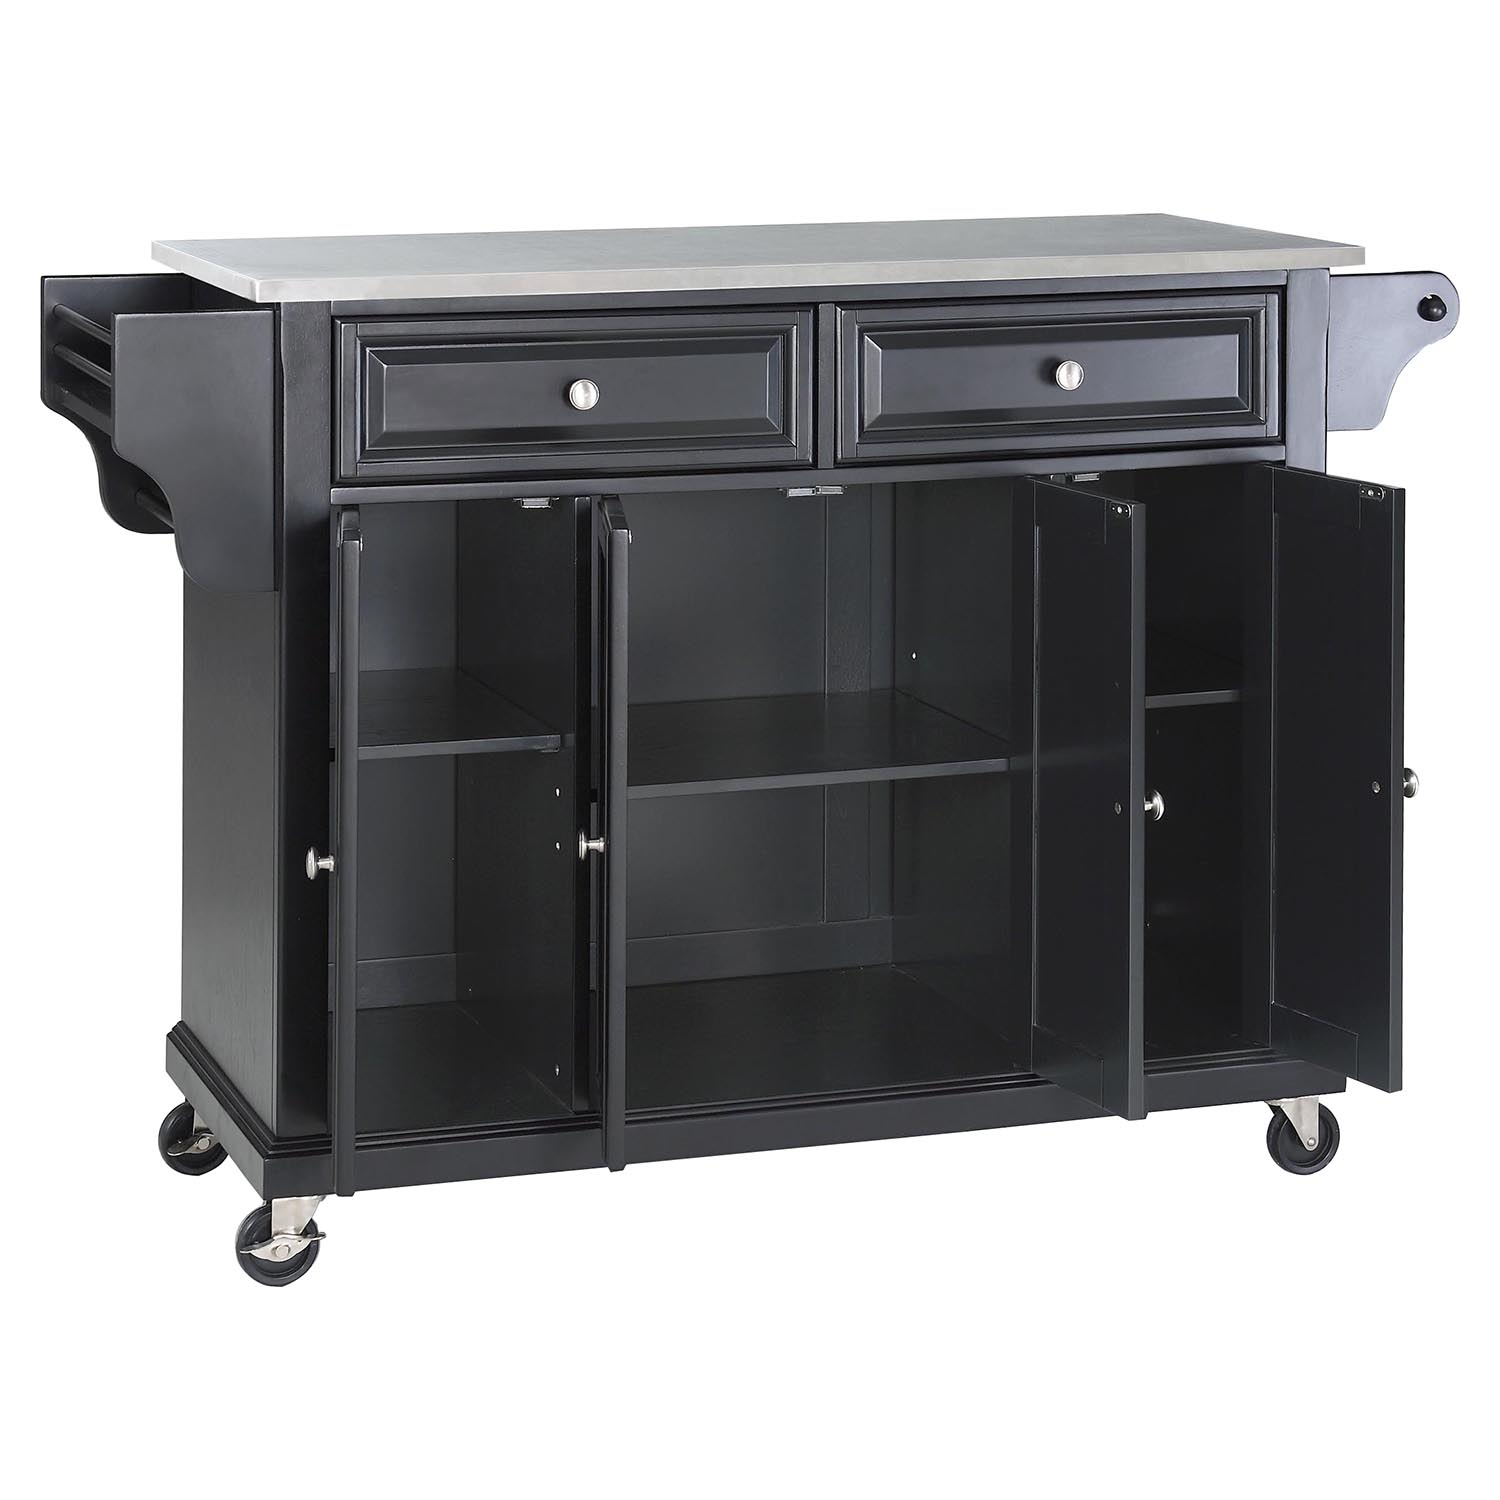 black kitchen island with stainless steel top quicua com black kitchen island with stainless steel top home